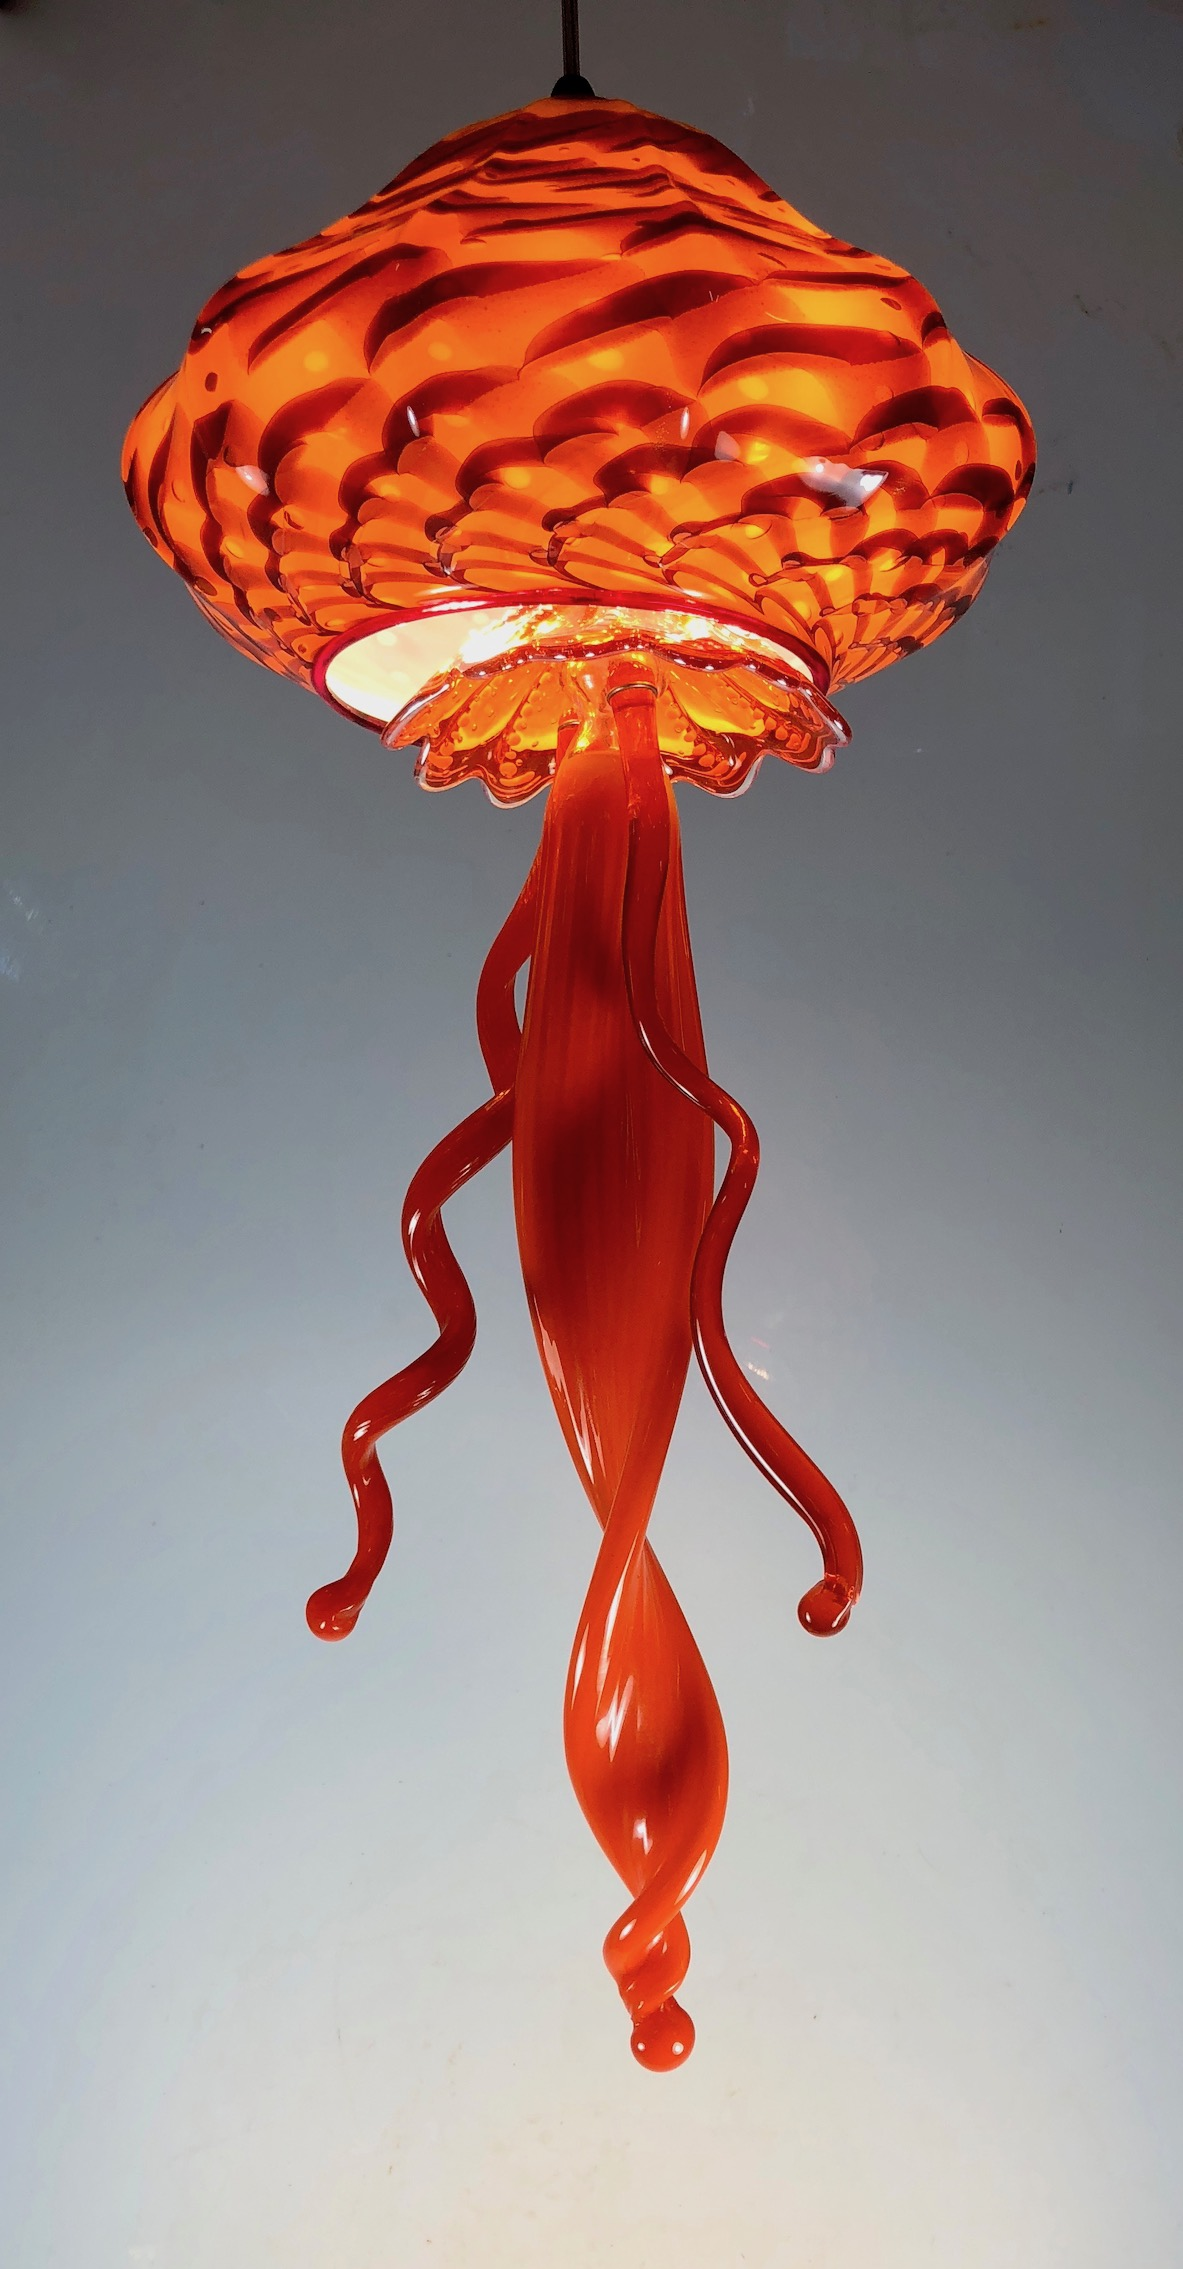 """11"""" x  25""""  all new  tentacles and skirt  Orange and Silver  hand decorated for sale now."""